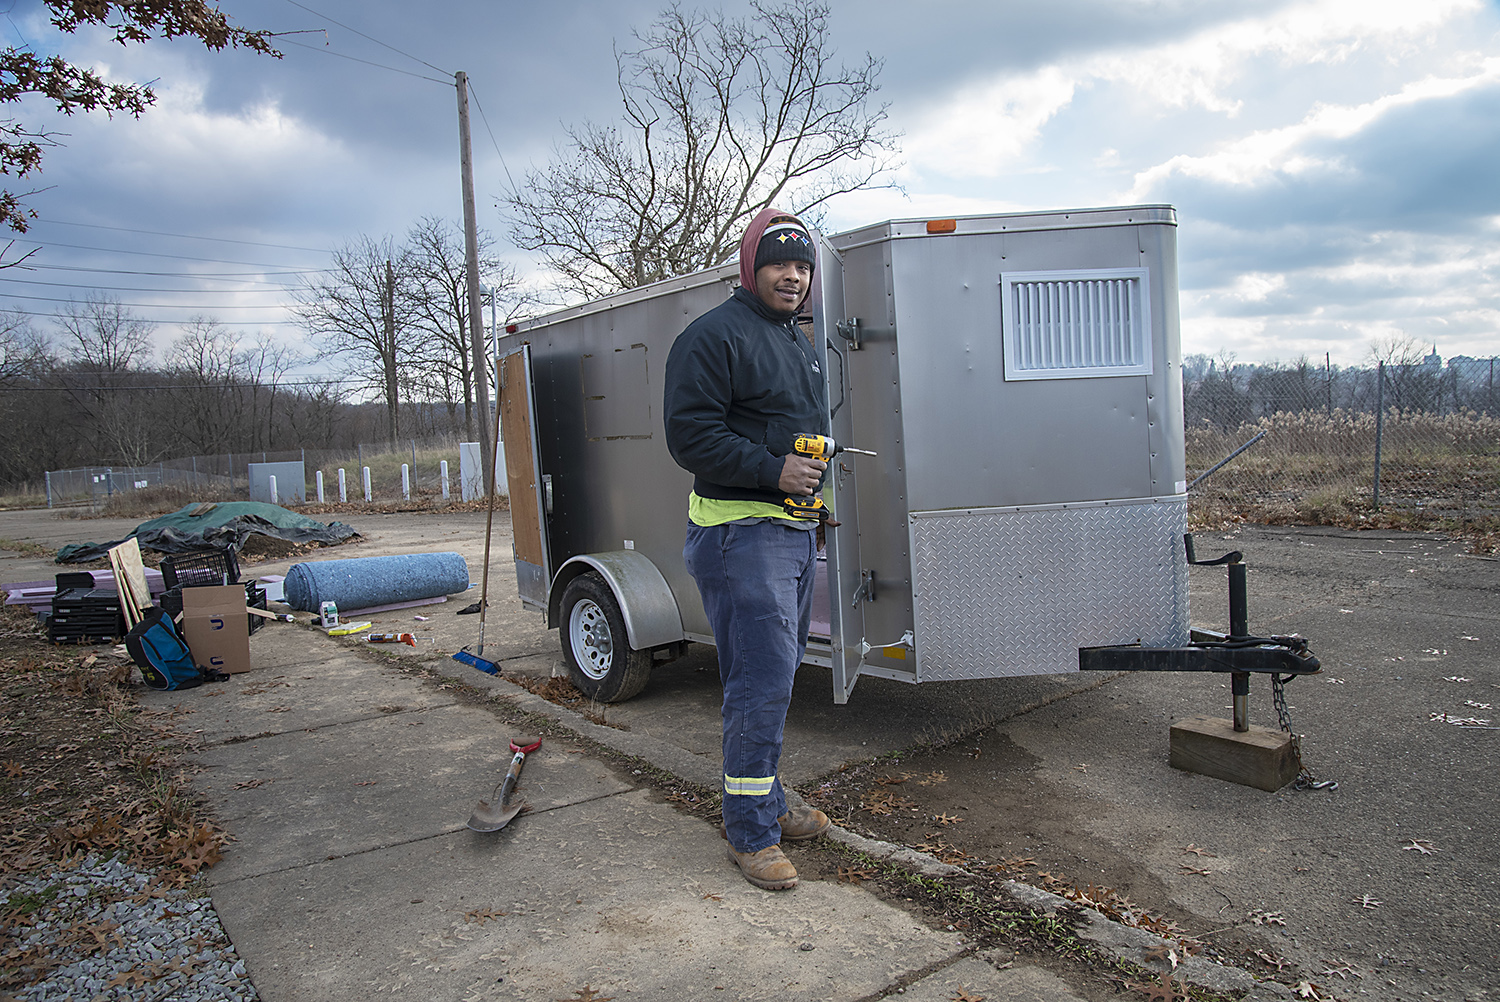 Rakeem Collins, an employee of DECO Resources, is building a mobile cooler to transport produce from the Hilltop Urban Farm to sell to residents. (Photo by Teake Zuidema/PublicSource)